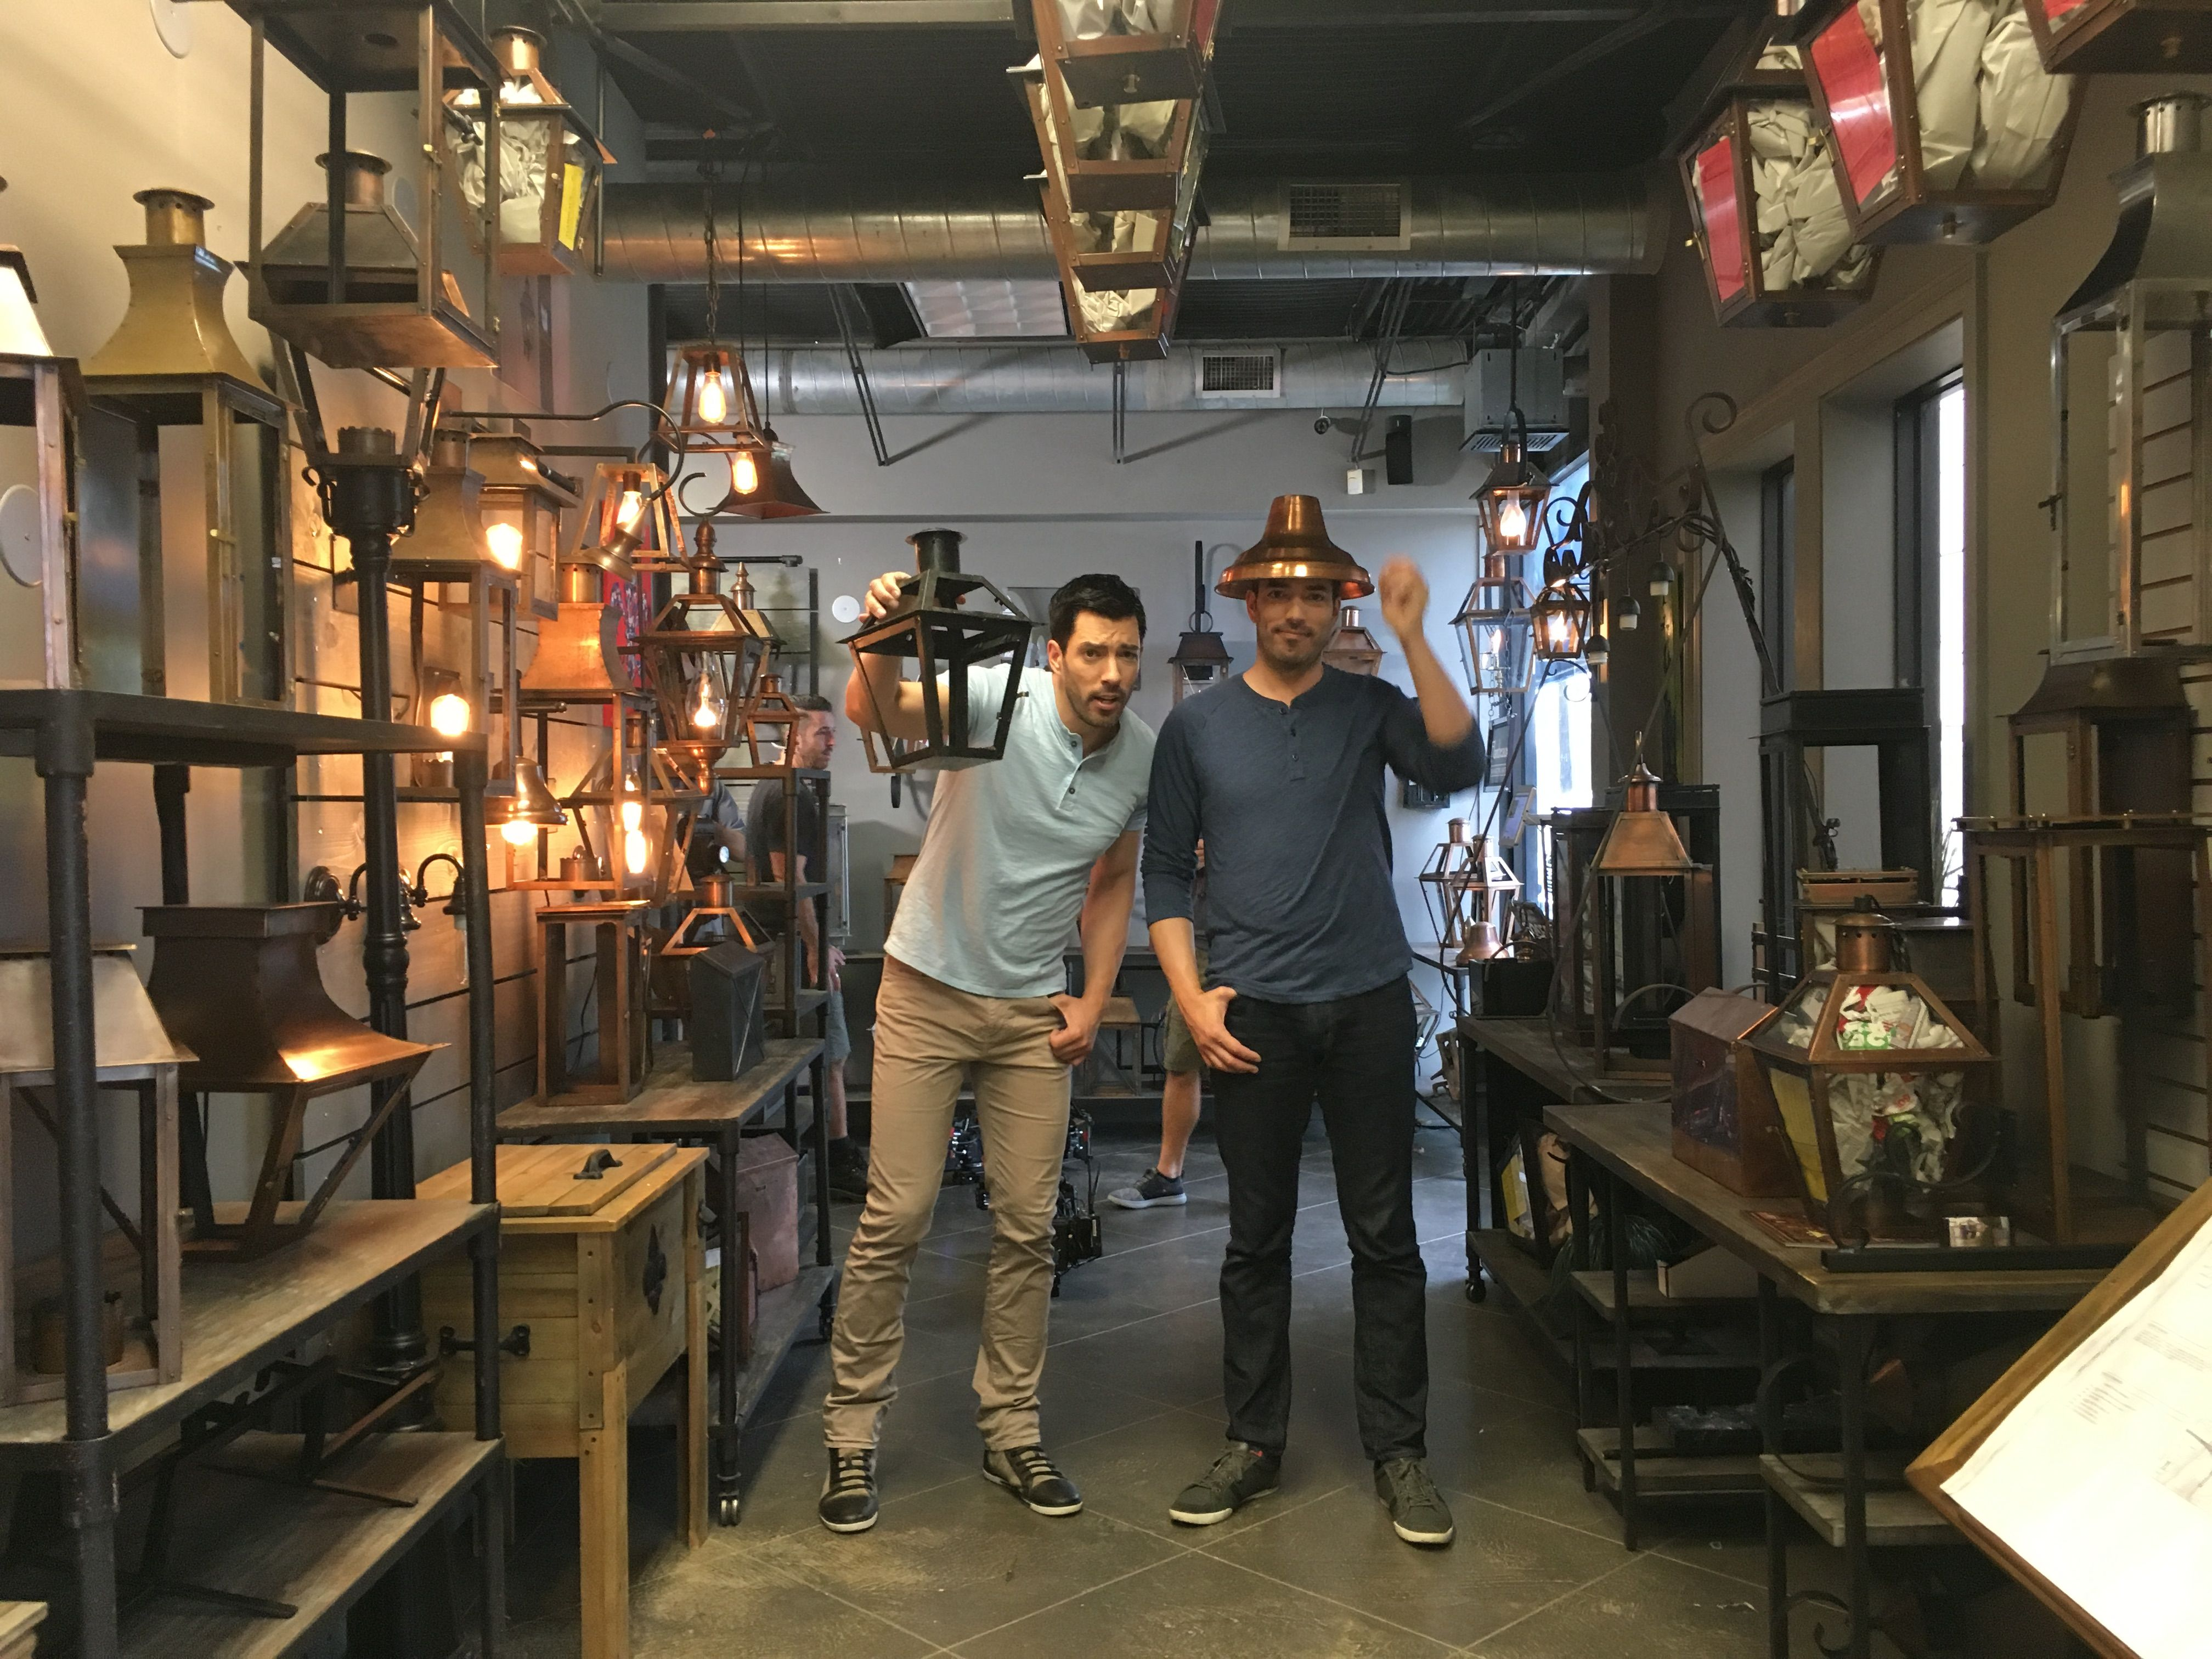 We loved incorporating iconic New Orleans aesthetics into our designs. Gas lamps were a must! #BrothersTakeNOLA @mrdrewscott